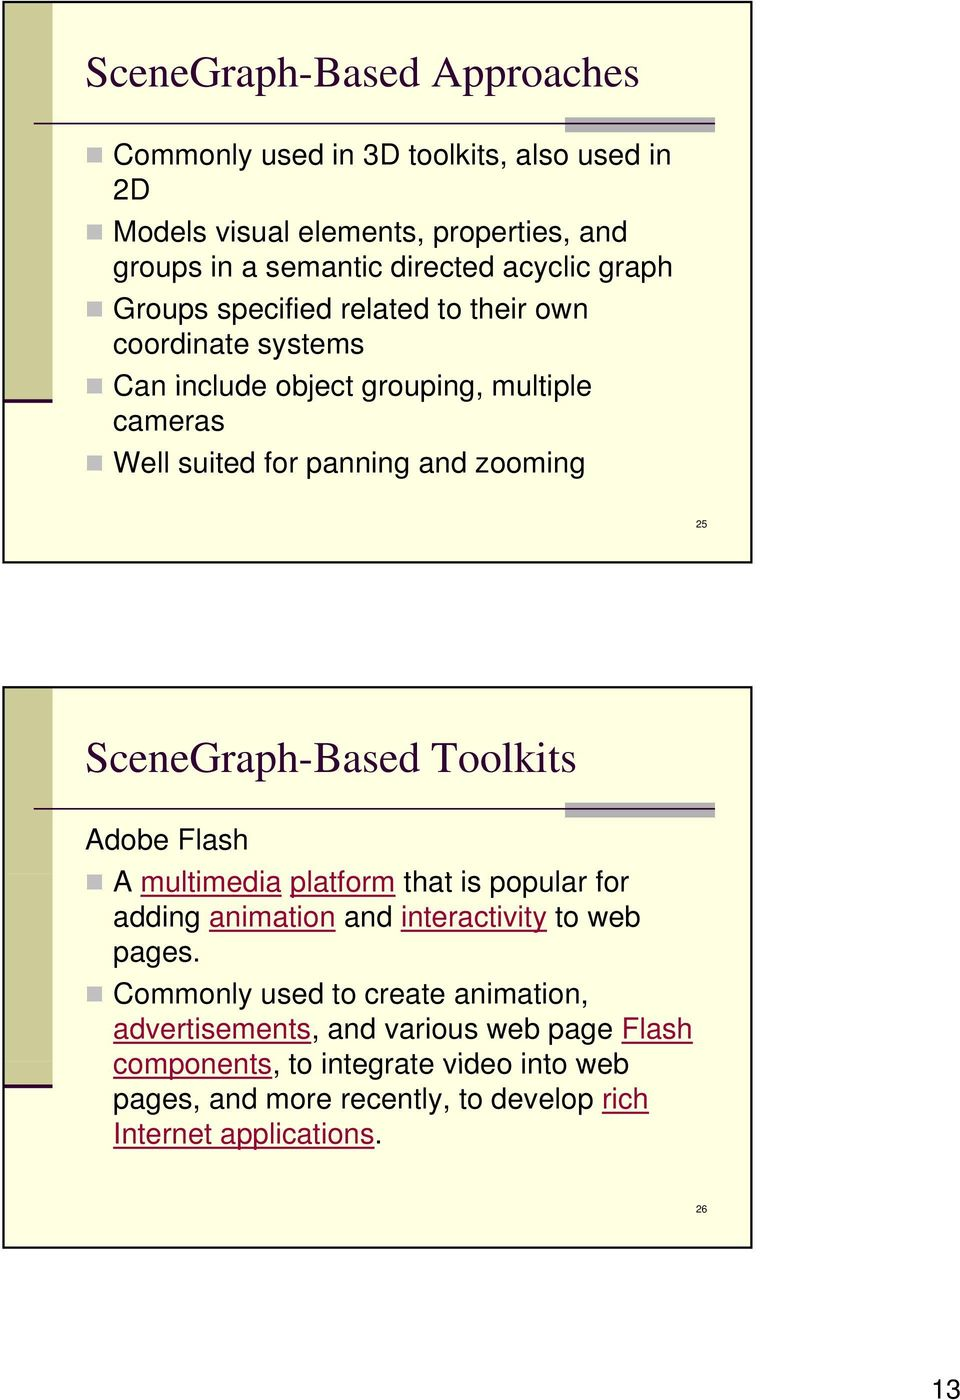 SceneGraph-Based Toolkits Adobe Flash A multimedia platform that t is popular for adding animation and interactivity to web pages.